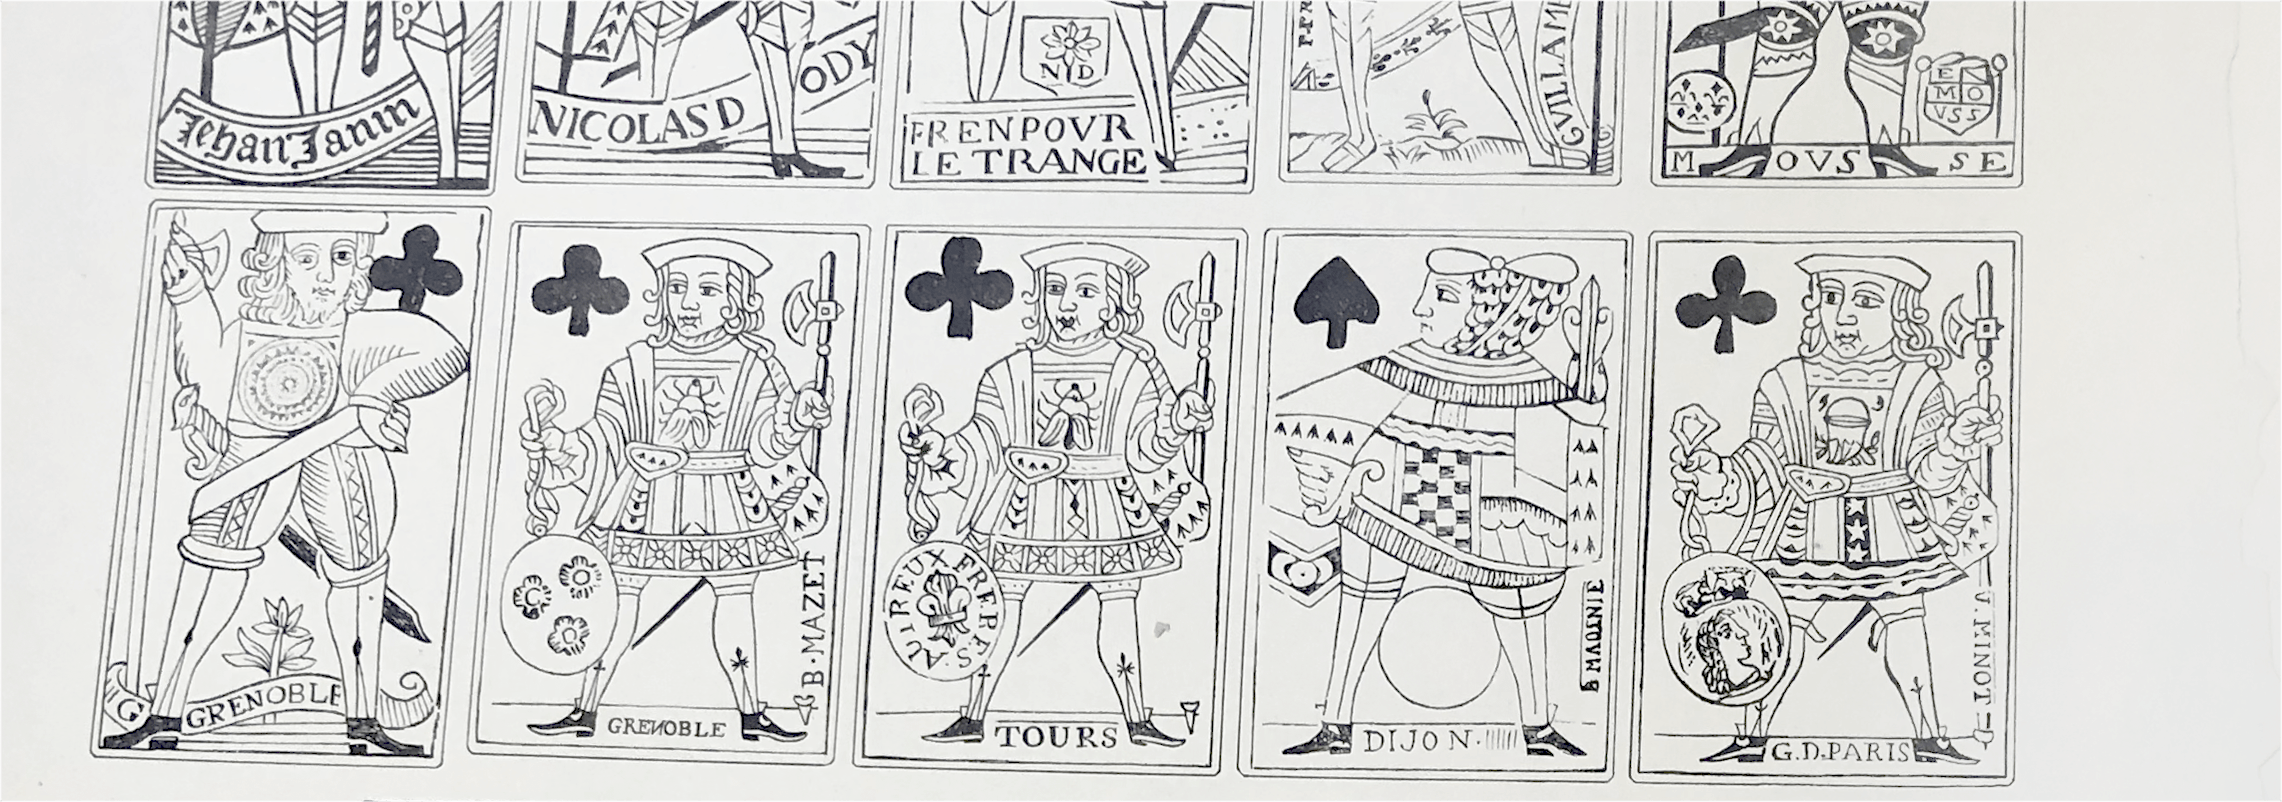 Solitaired History Playing Card Design